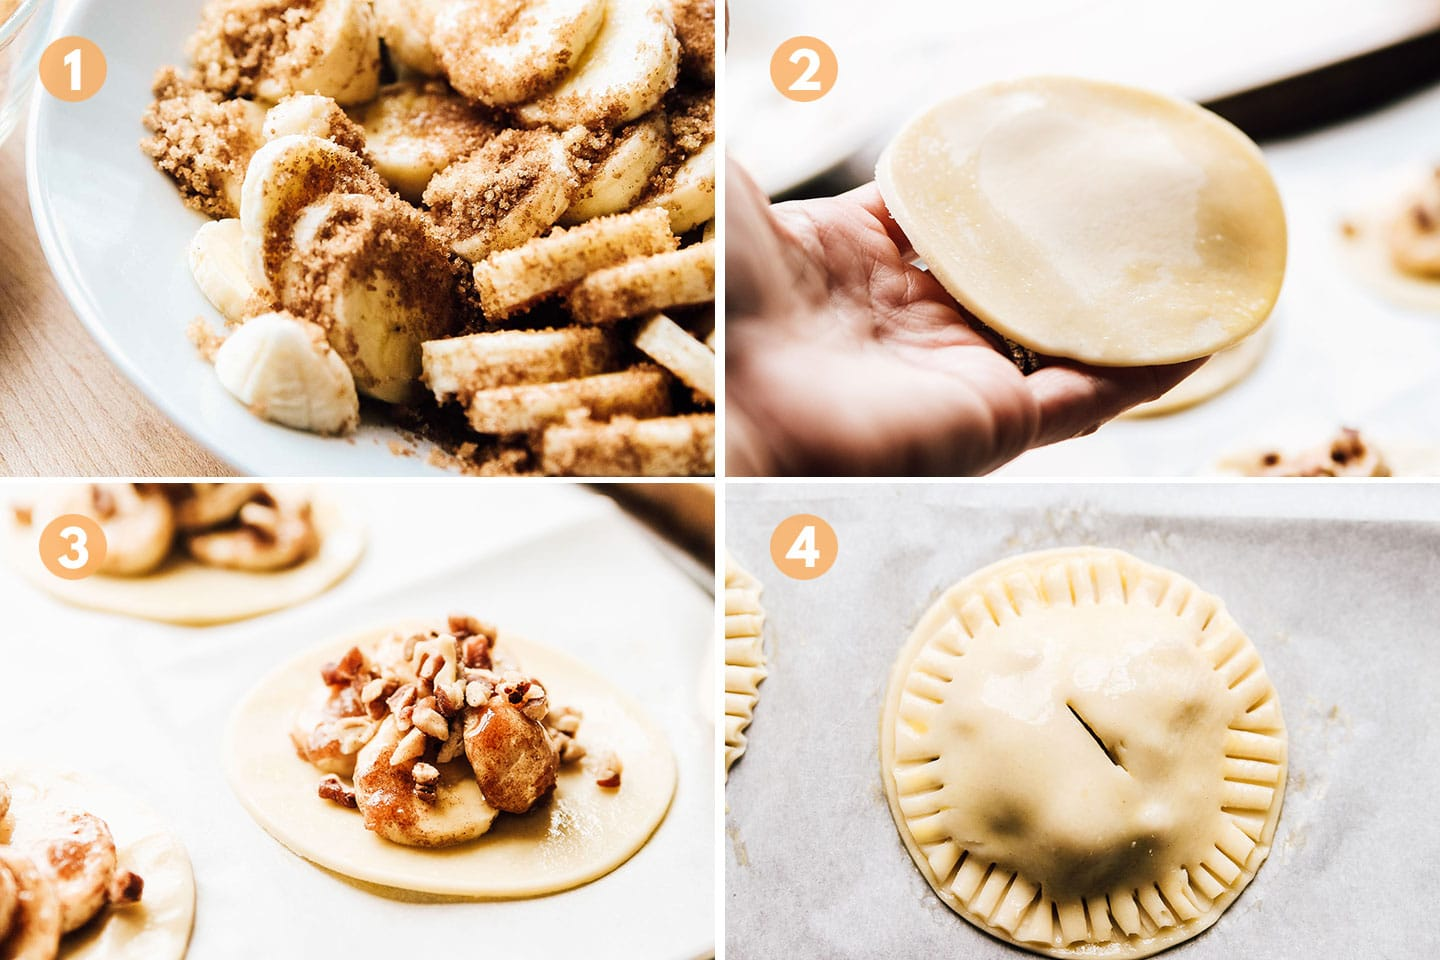 steps 1 through 4 of making the hand pies.